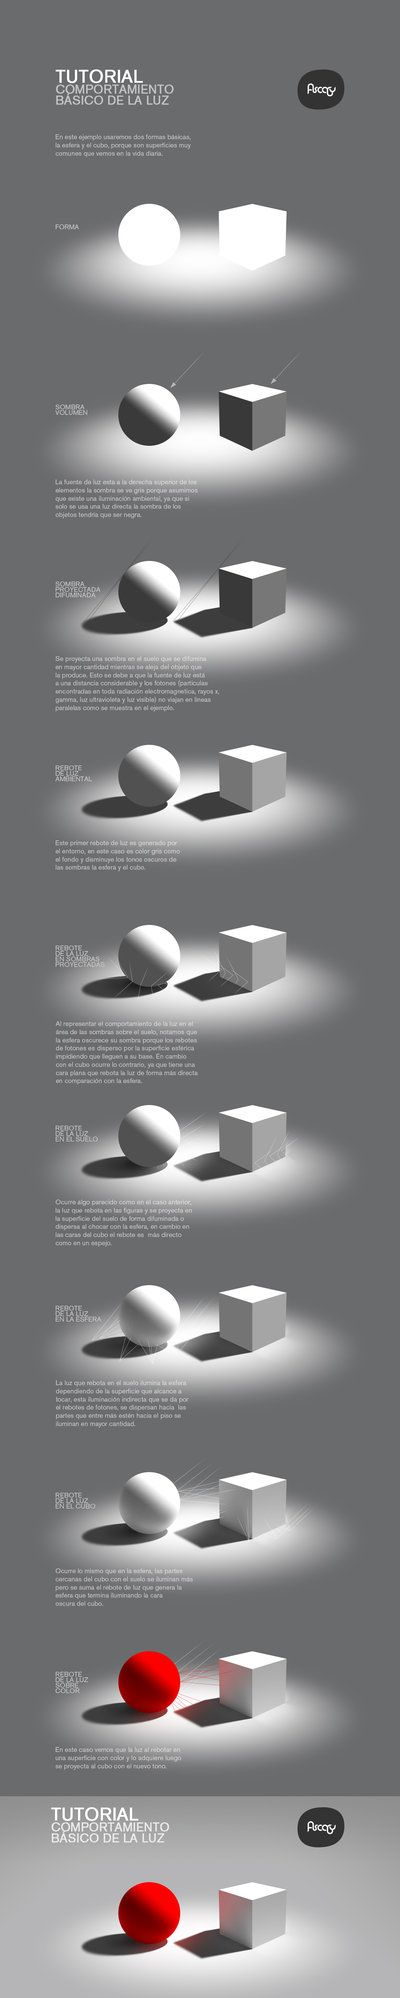 Cool tutorial on light and shadow...what it's all about as far as I am concerned. tutorial basico de luz by hikaruga